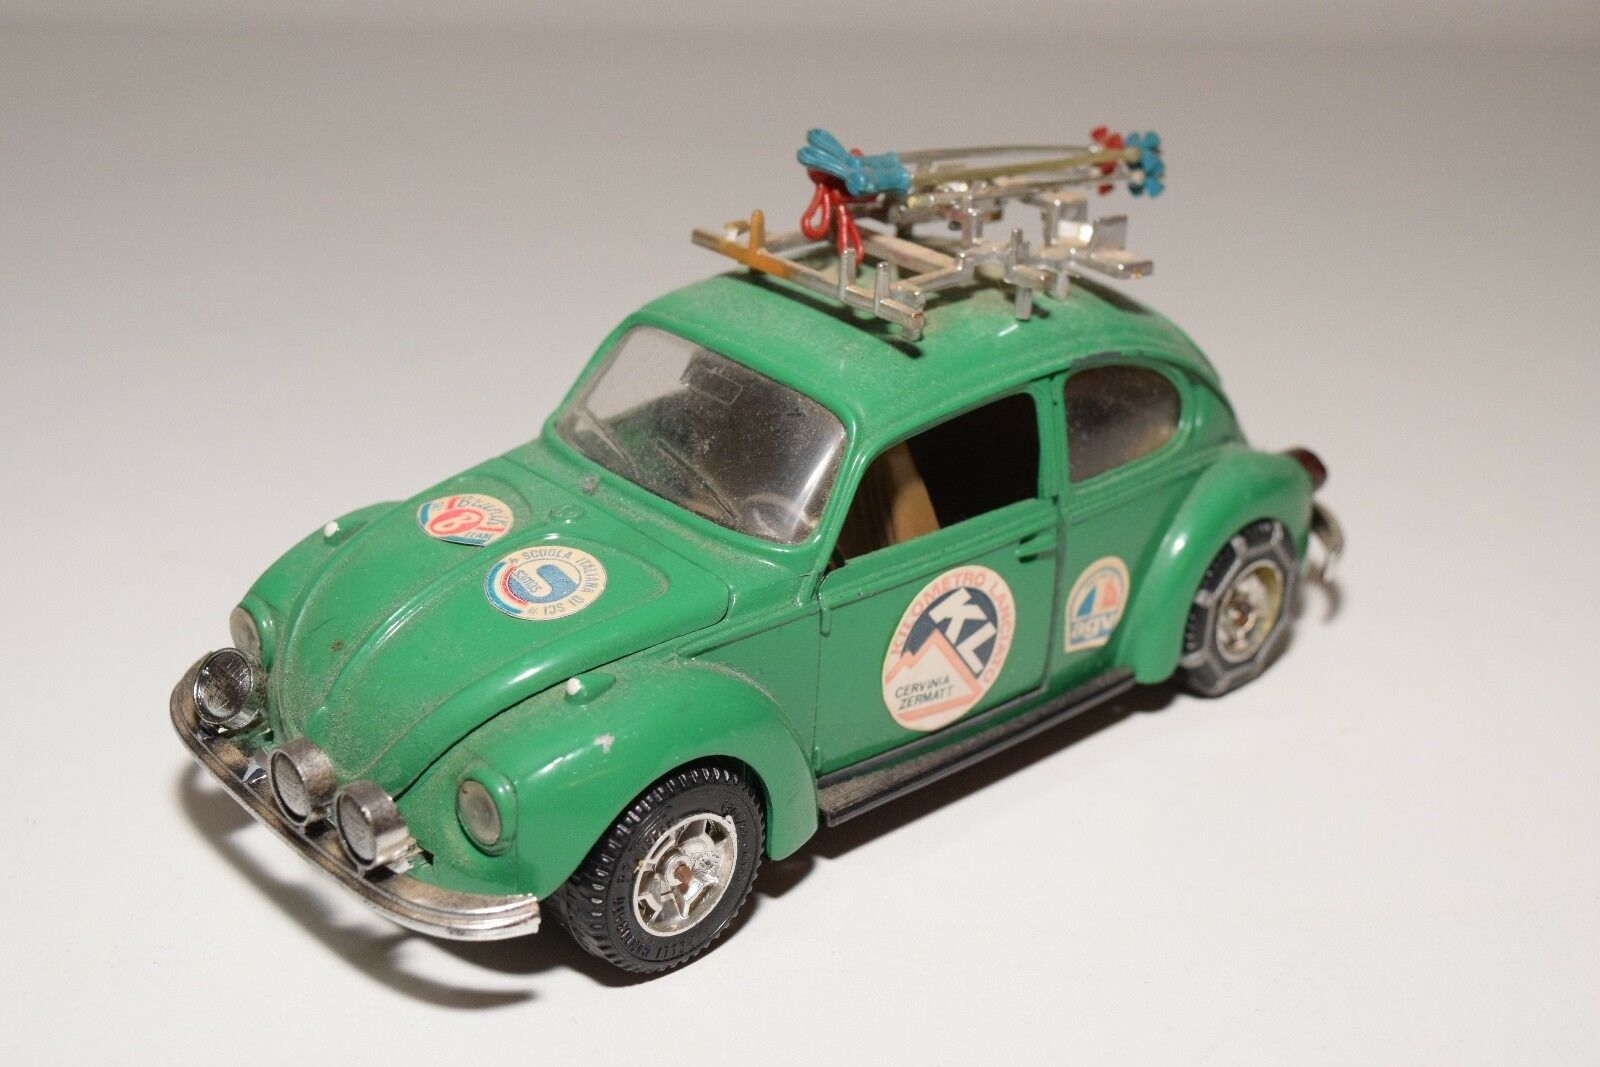 MEBETOYS MEBETOYS MEBETOYS 8615 VW VOLKSWAGEN BEETLE KAFER SKI GREEN EXCELLENT CONDITION 67c444